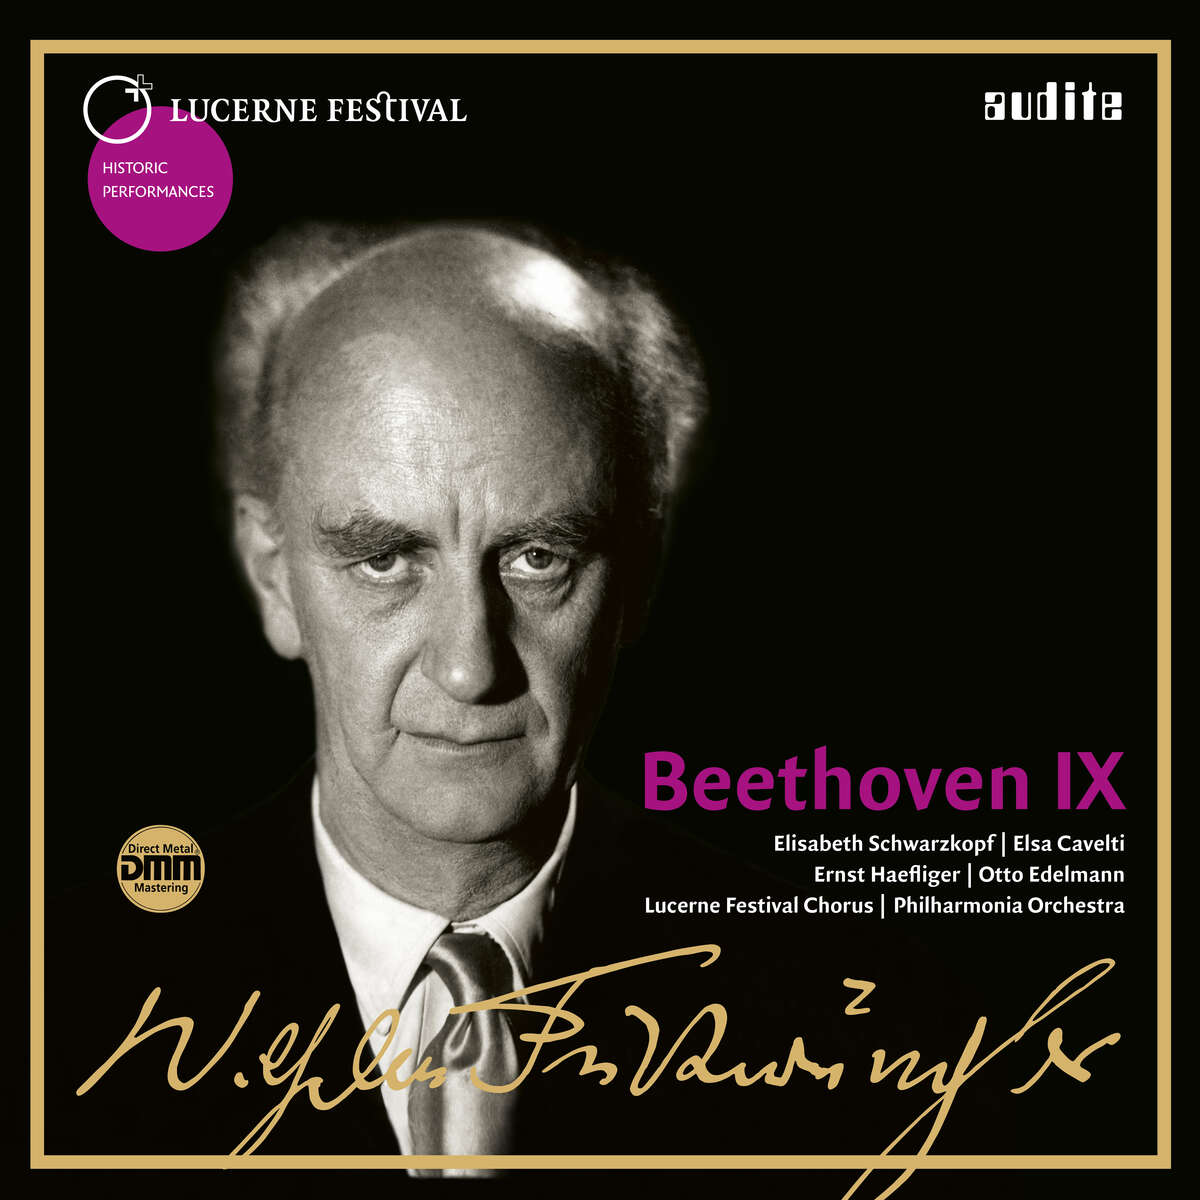 beethovens symphony no 9 Beethoven, ludwig van / symphony no 9 in d minor, op125 - score id:  2194 document image view score composer beethoven, ludwig van.